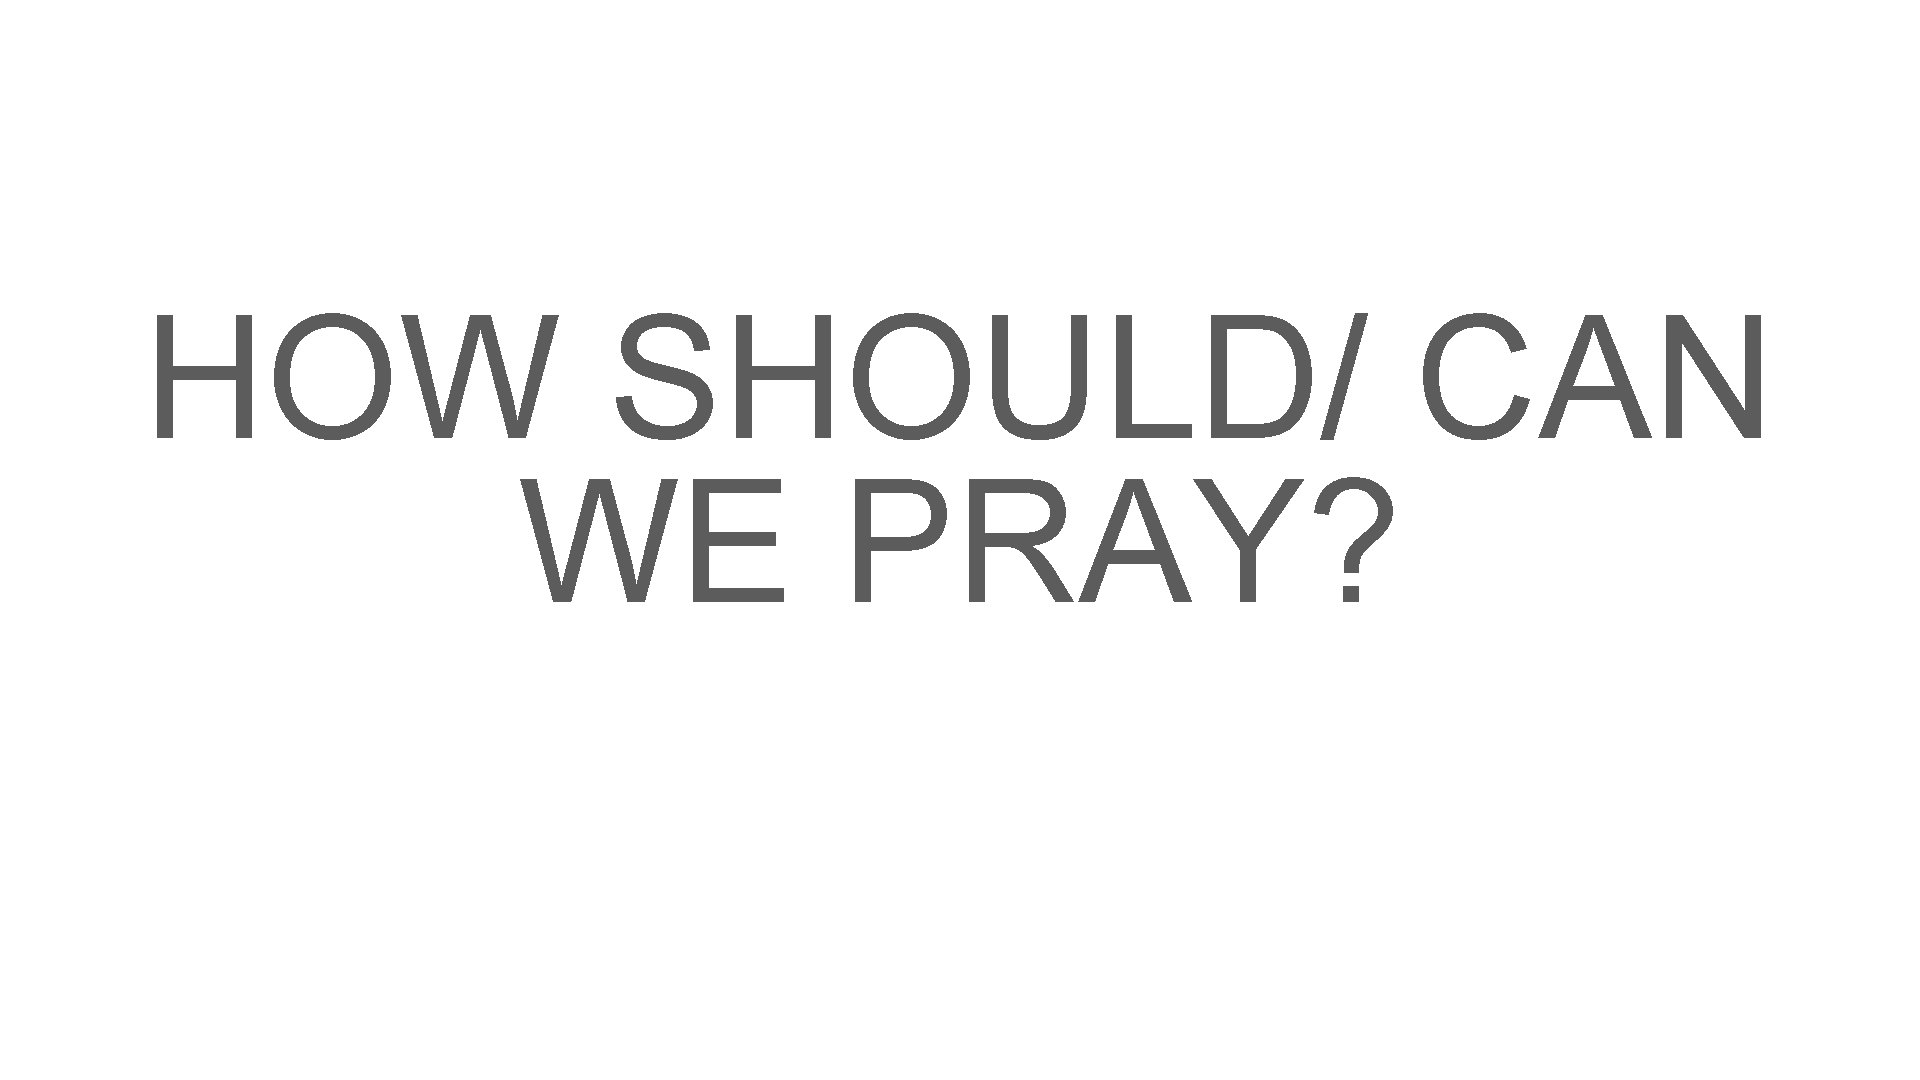 HOW SHOULD/ CAN WE PRAY?